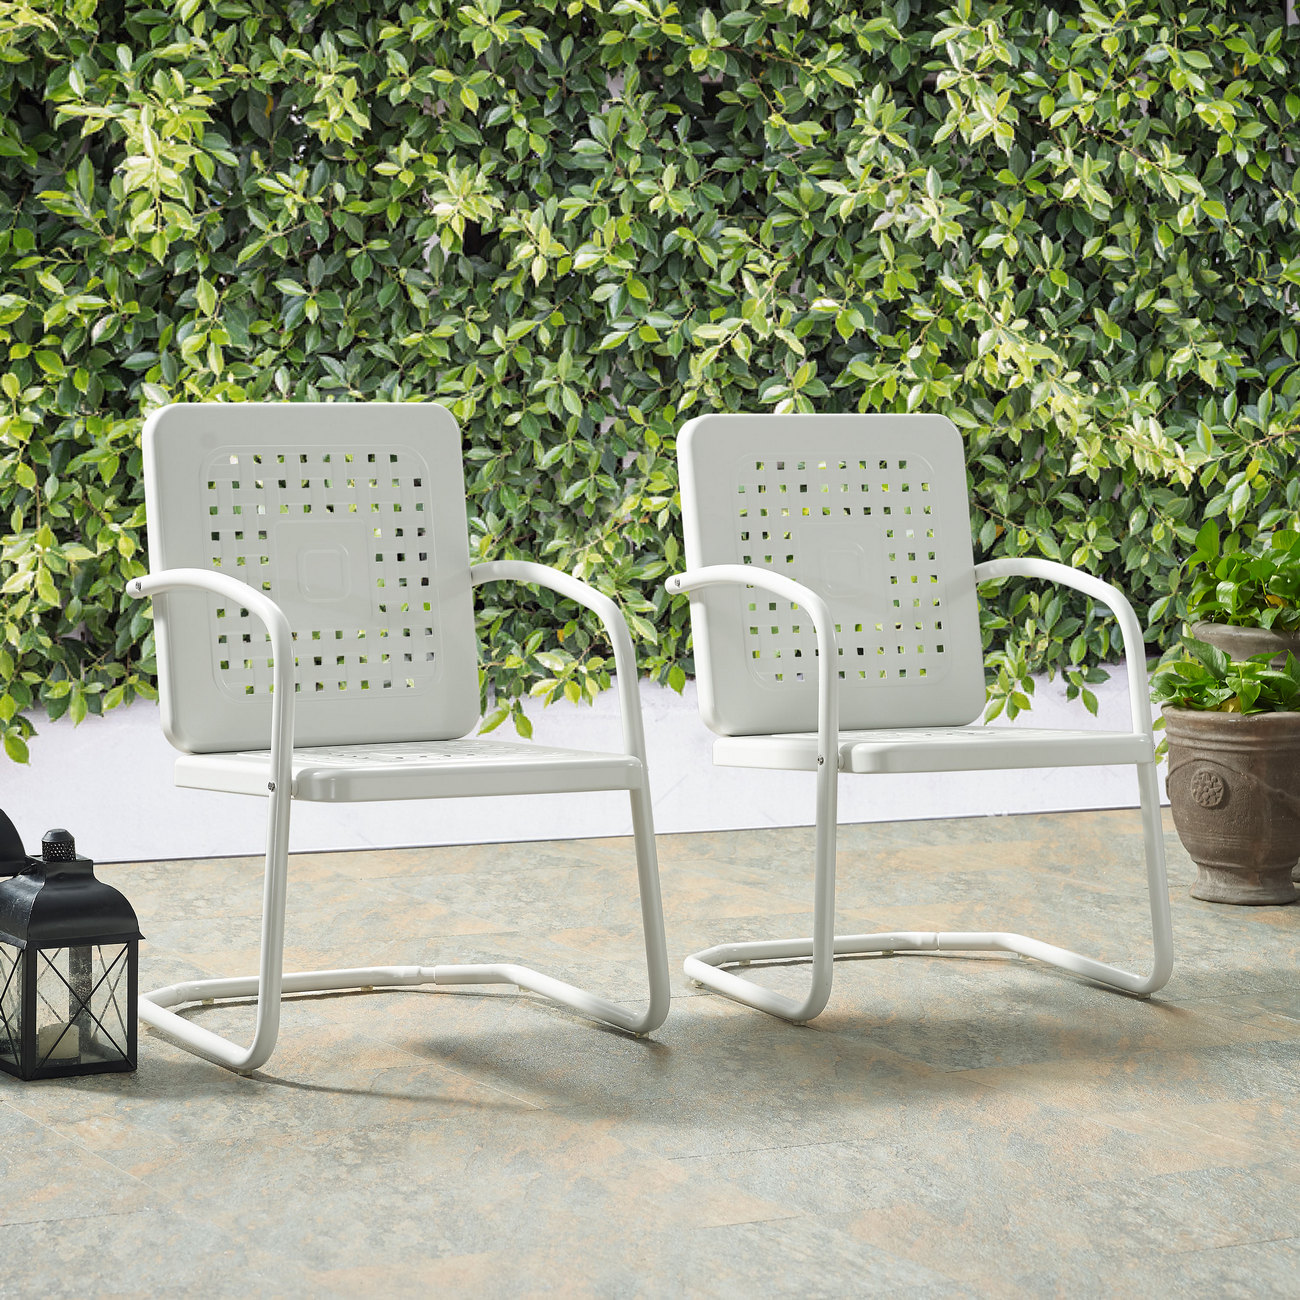 Bates Chair in White (Set of 2) - Crosley CO1025-WH